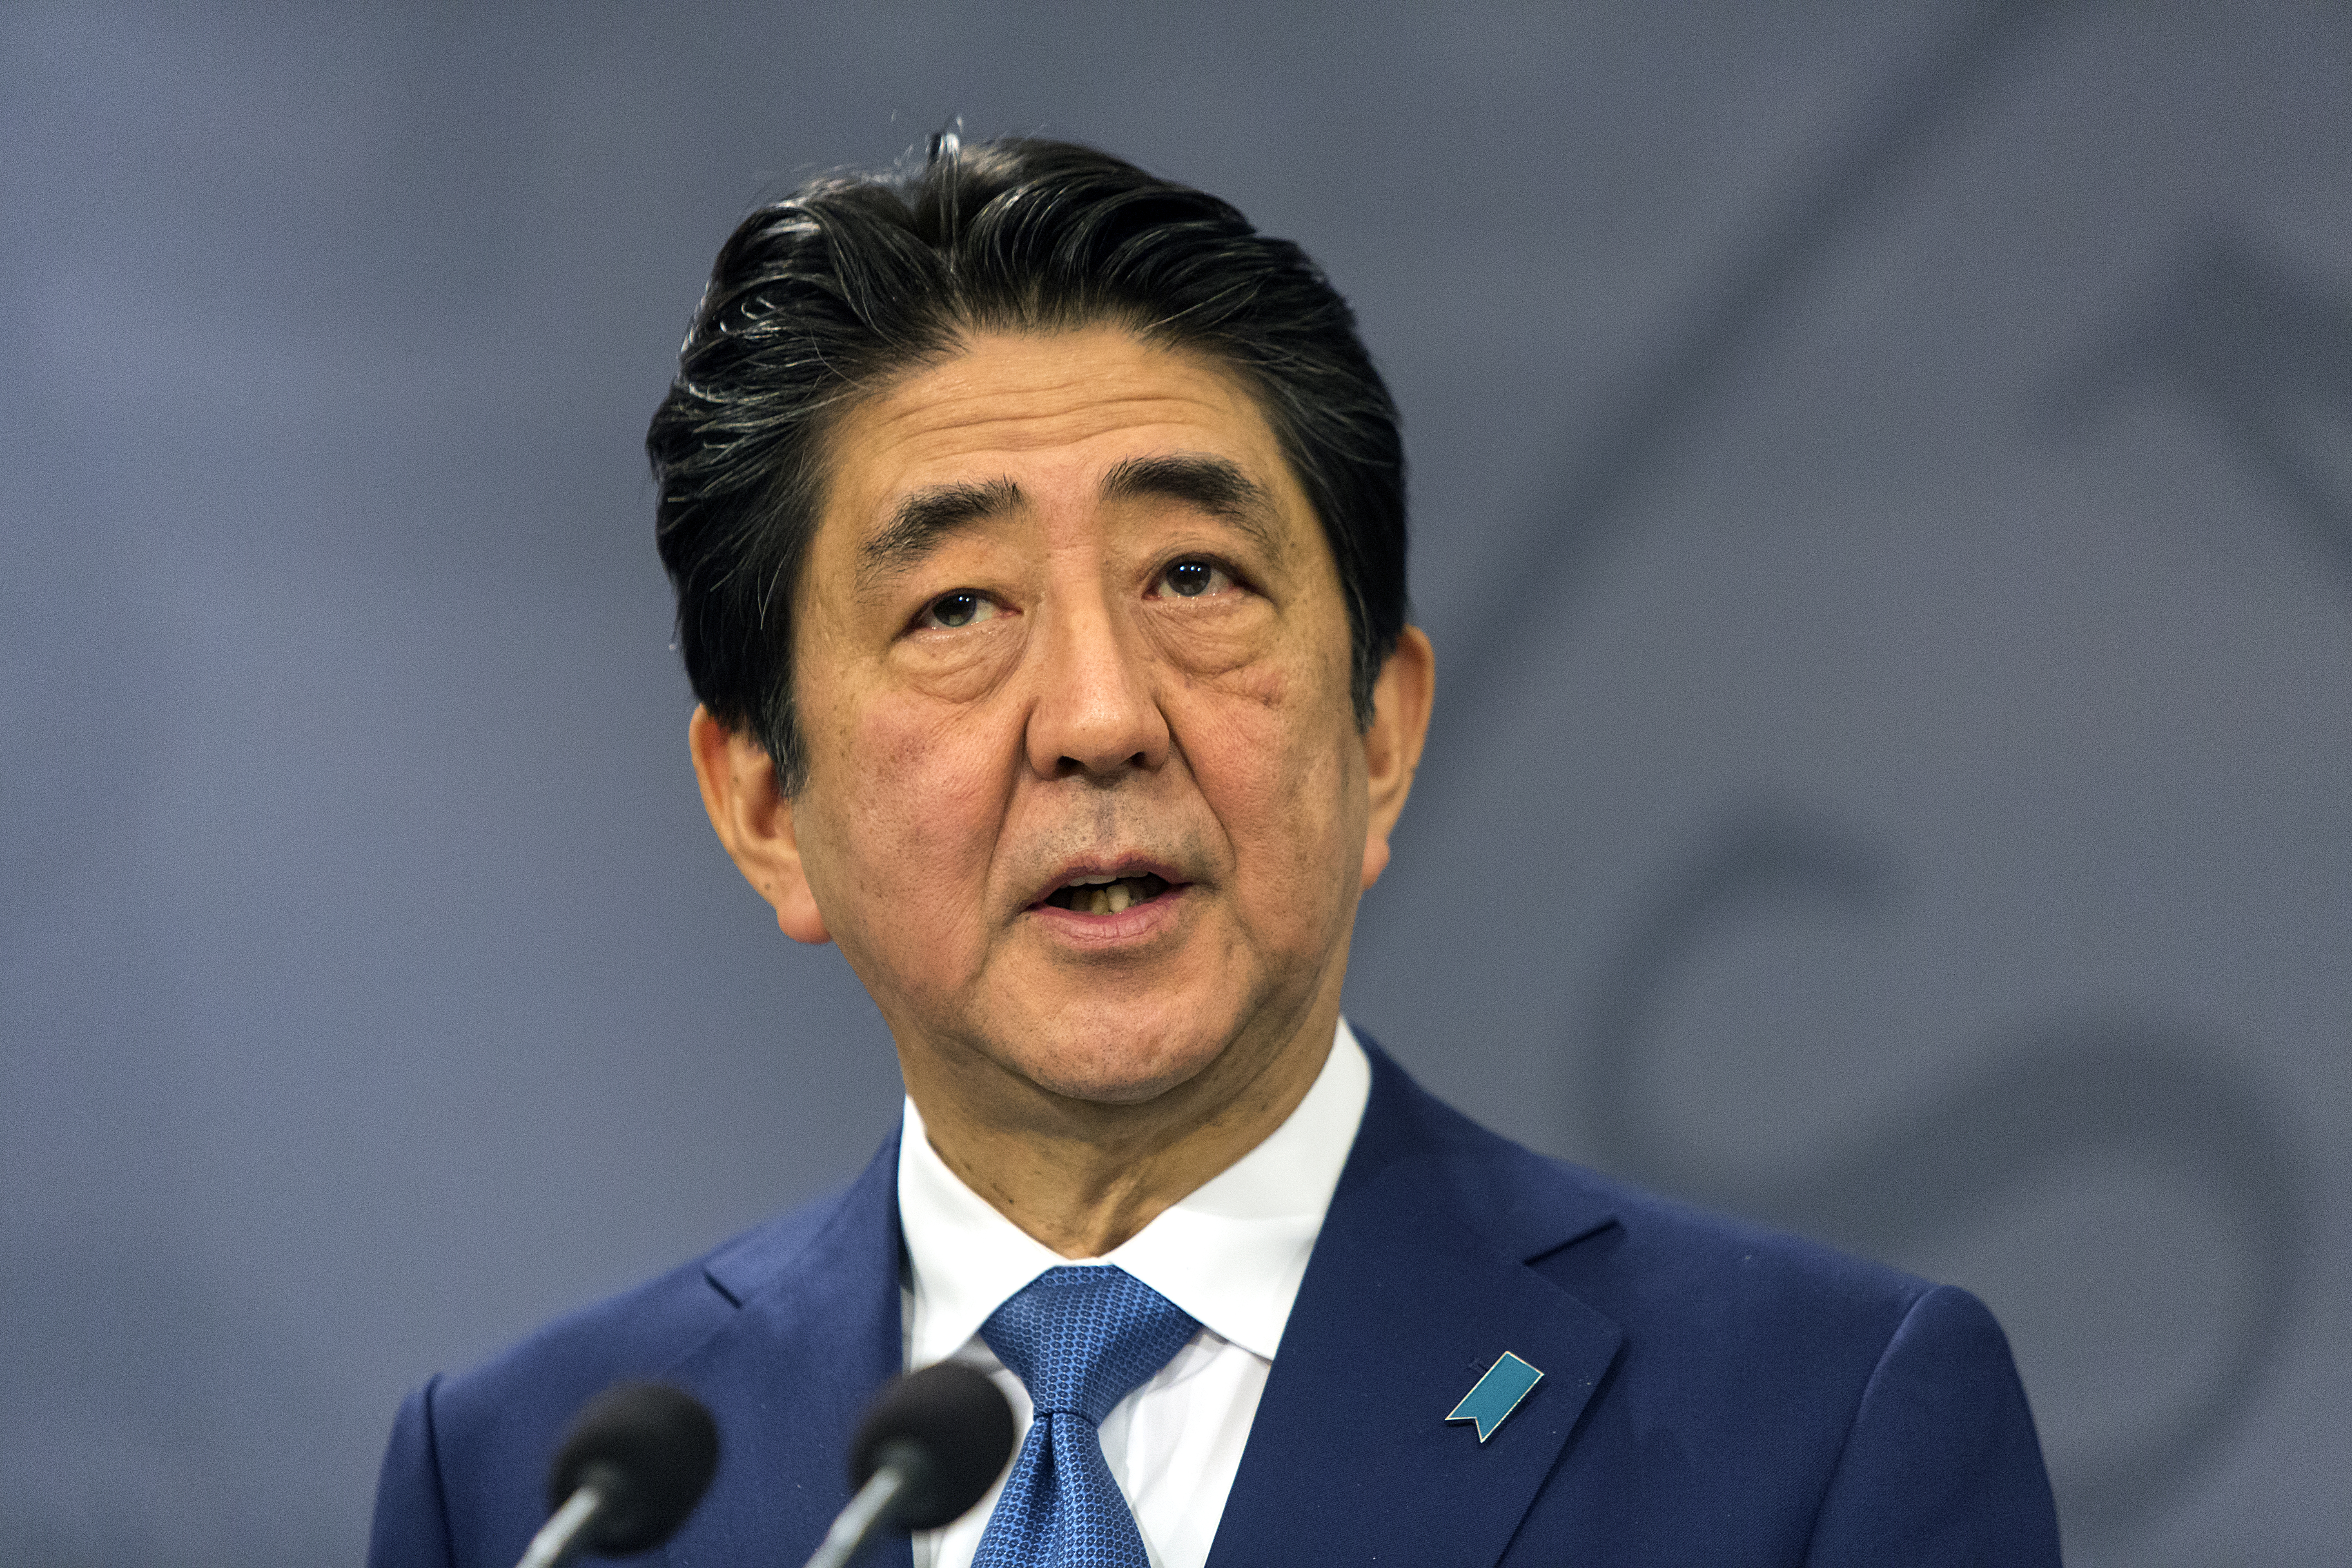 COPENHAGEN, DENMARK - JULY 10: Japanese Prime Minister Shinzo Abe during his meeting with Danish Prime Minister Lars Loekke Rasmussen at the PM's Office on July 10, 2017 in Copenhagen, Denmark. The two heads of state discussed the situation on the Korean peninsula and how Japan and Denmark could enhance their strategic partnership further. The Japanese PM said during their joint press conference that North Korea undermines the international order seriously.  (Photo by Ole Jensen - Corbis/Corbis via Getty Images)